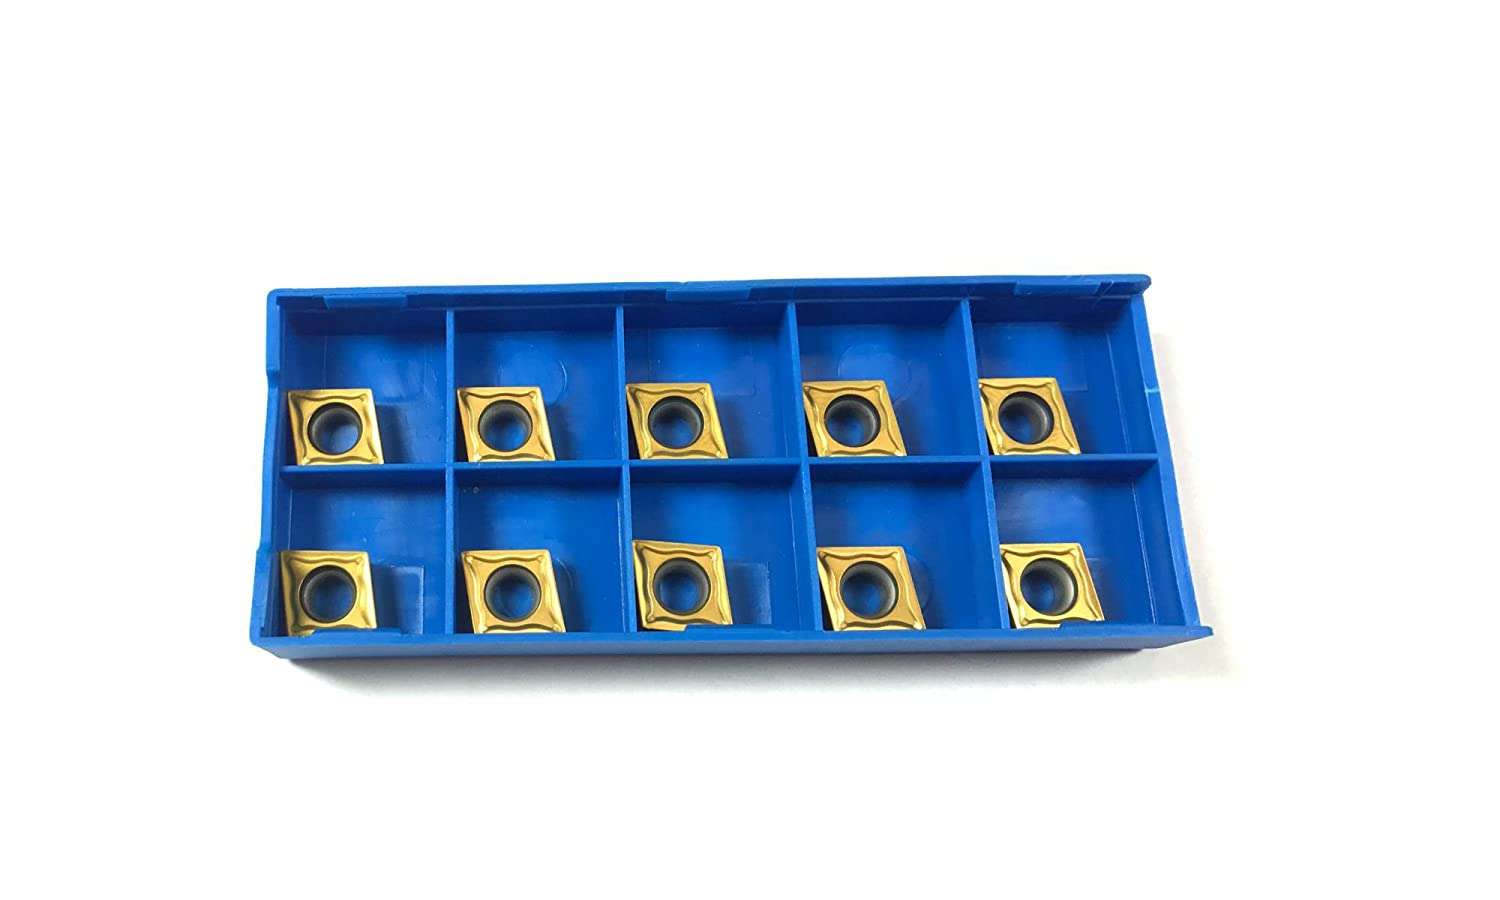 Indexable Carbide Turning Inserts CCMT 060204 TiN Coated for Steel and Stainless Steel